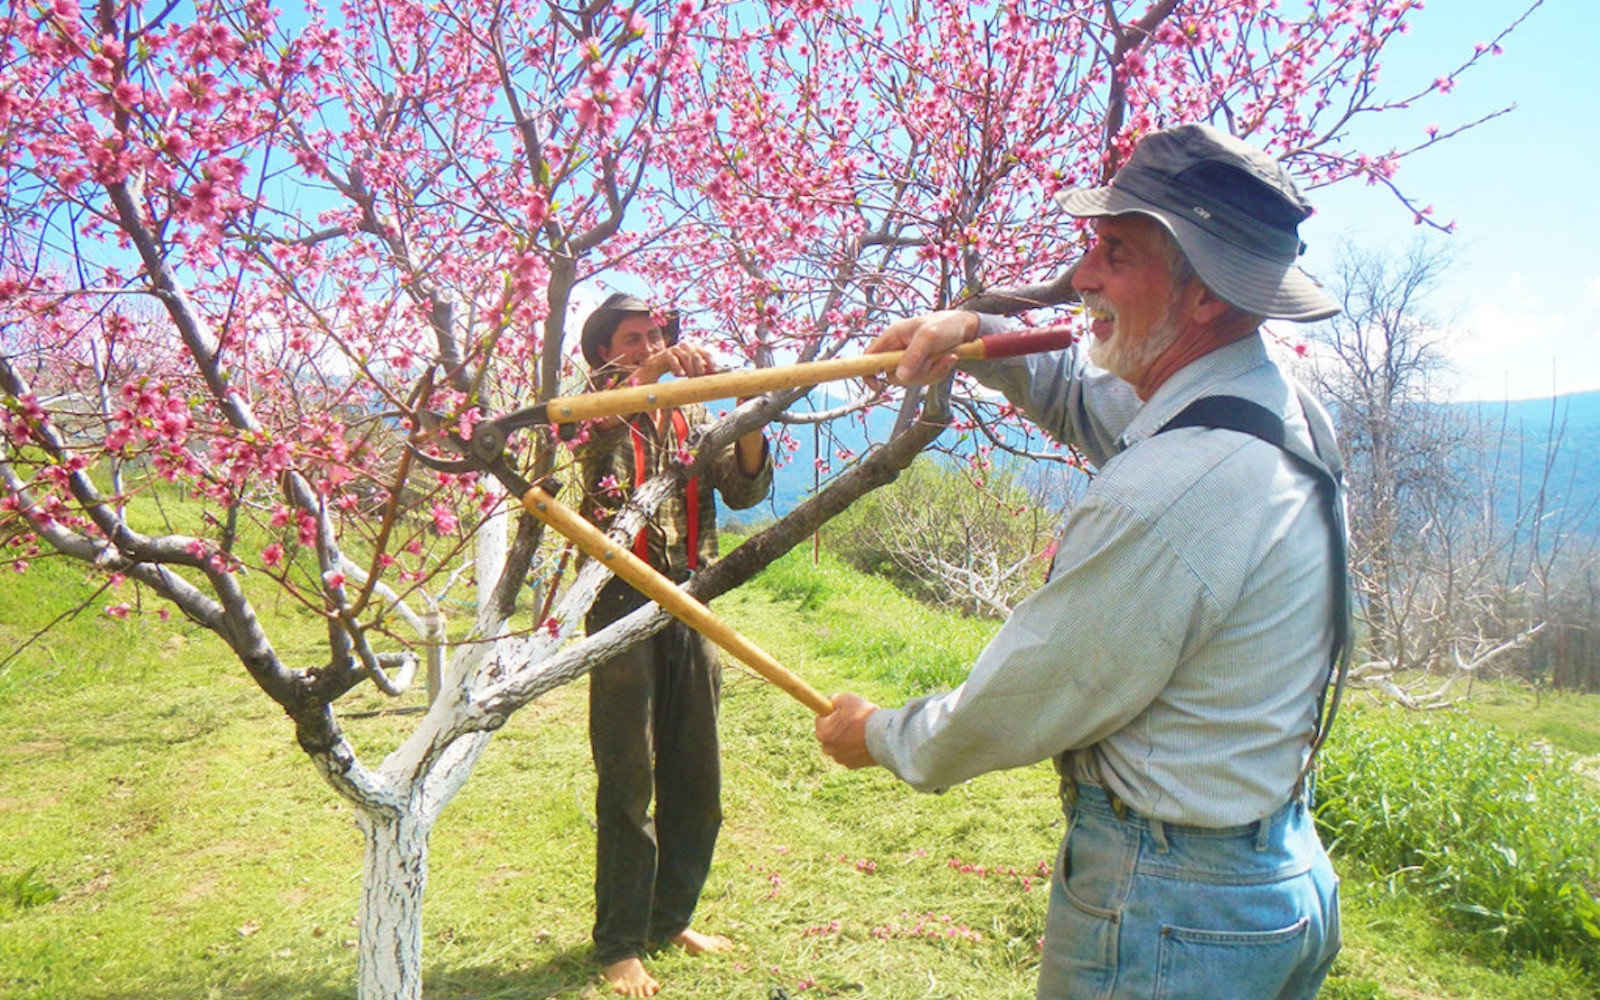 Farmer tends to a tree on Kern Farms in North Fork, California